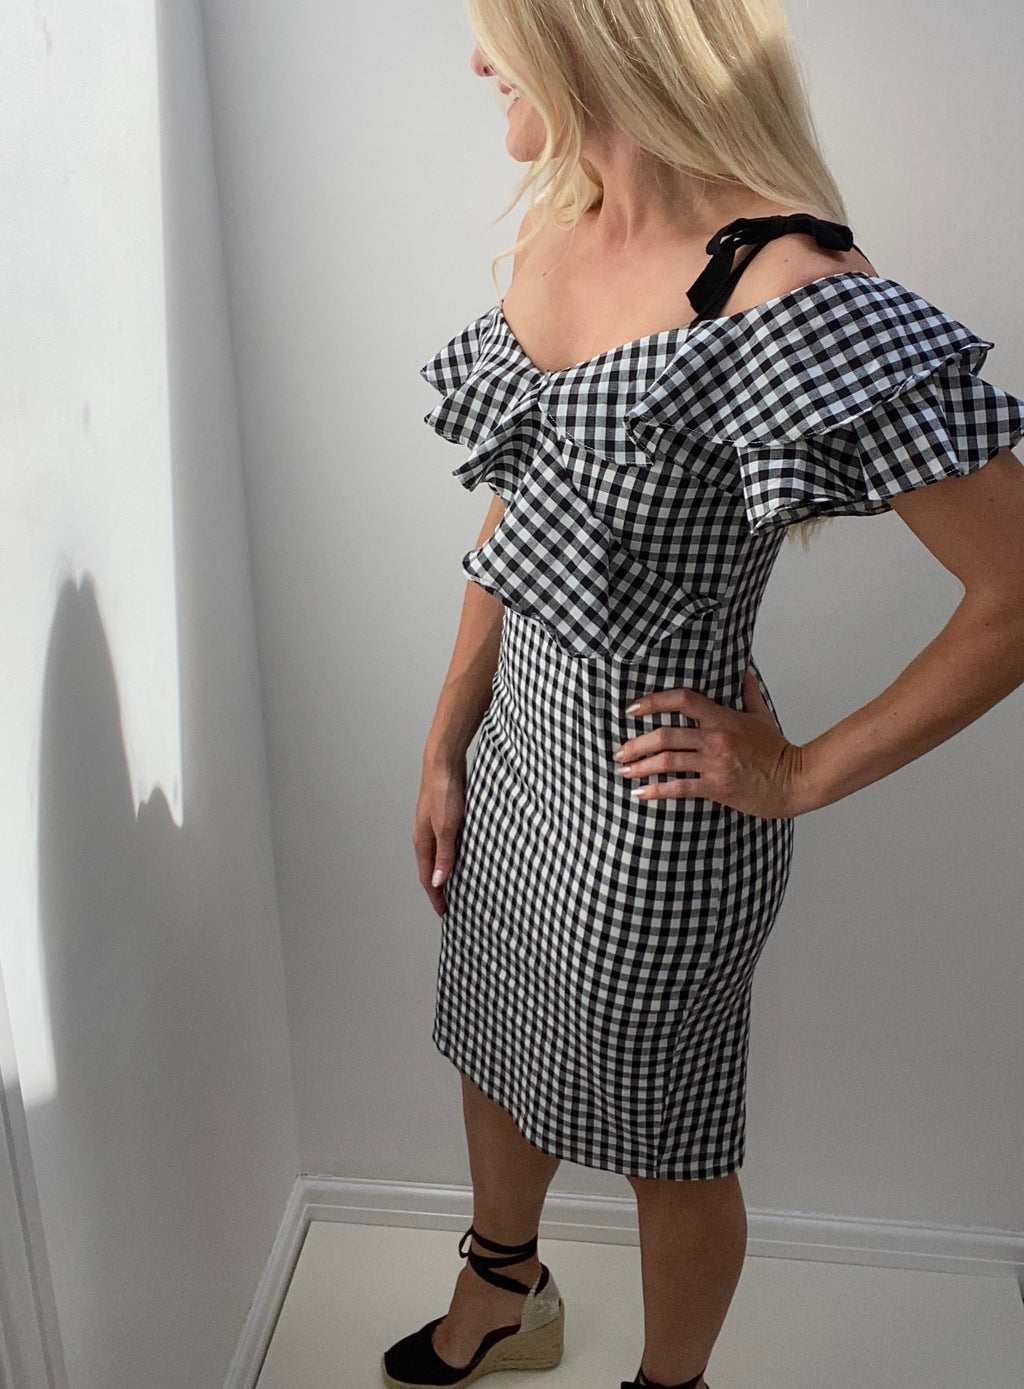 8TH SIGN SUMMER: AMALFI GINGHAM FRILL PENCIL MIDI